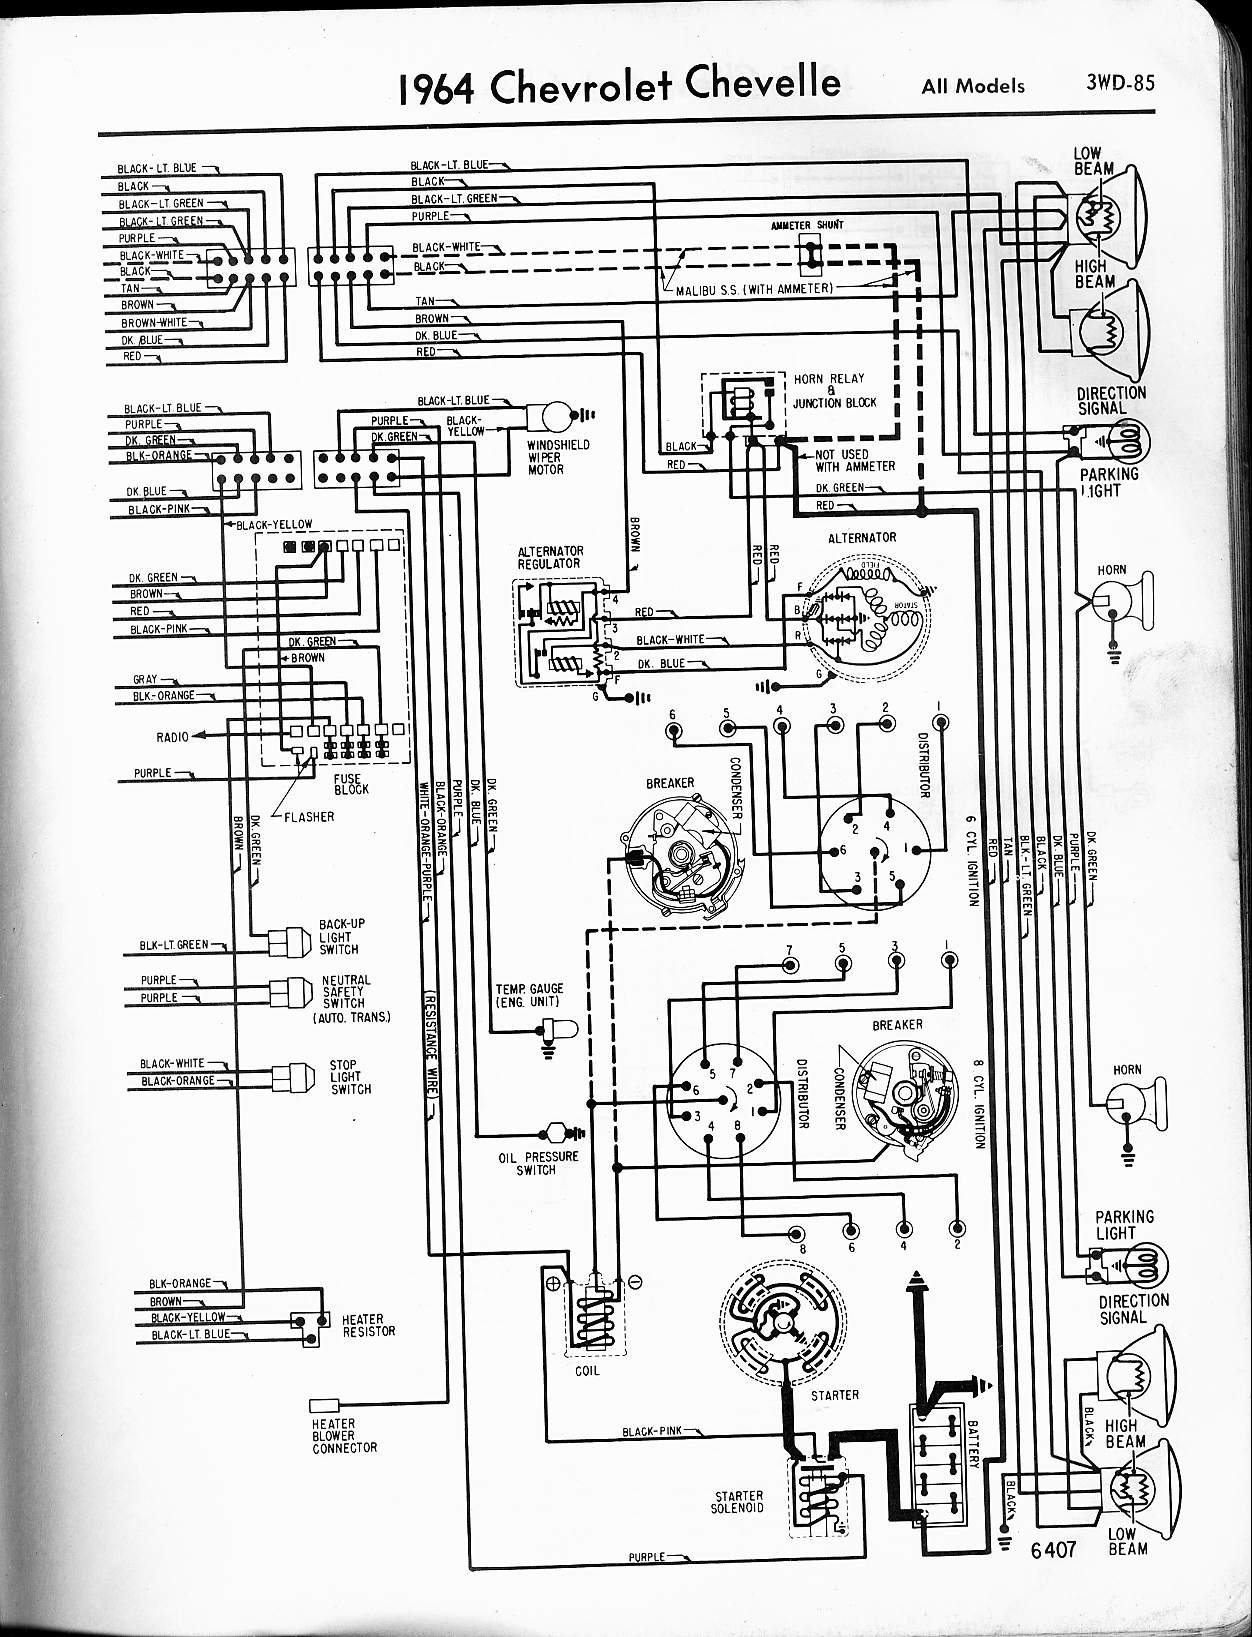 99 Chevy Malibu Wiring Diagram Library Chevrolet Diagrams 1969 Chevelle Schematic